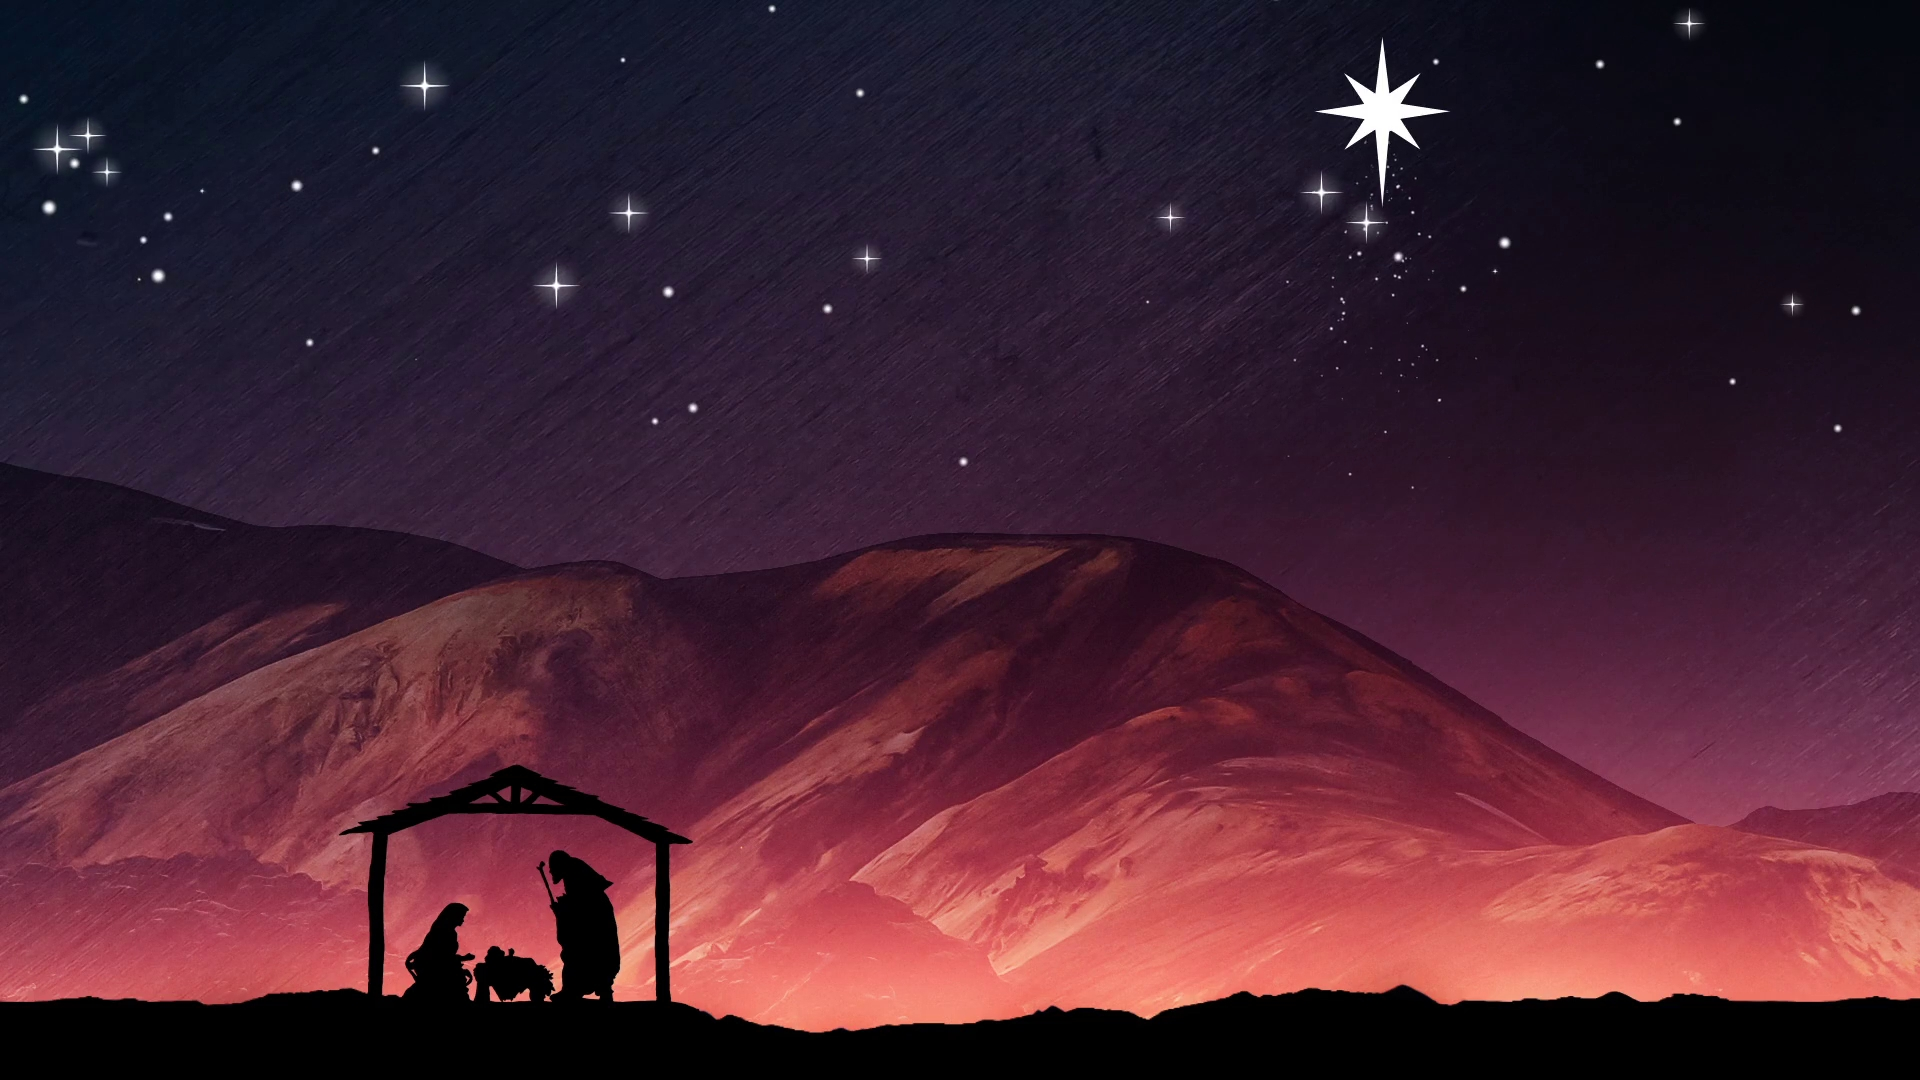 christmas nativity background. mary, joseph and baby jesus in a